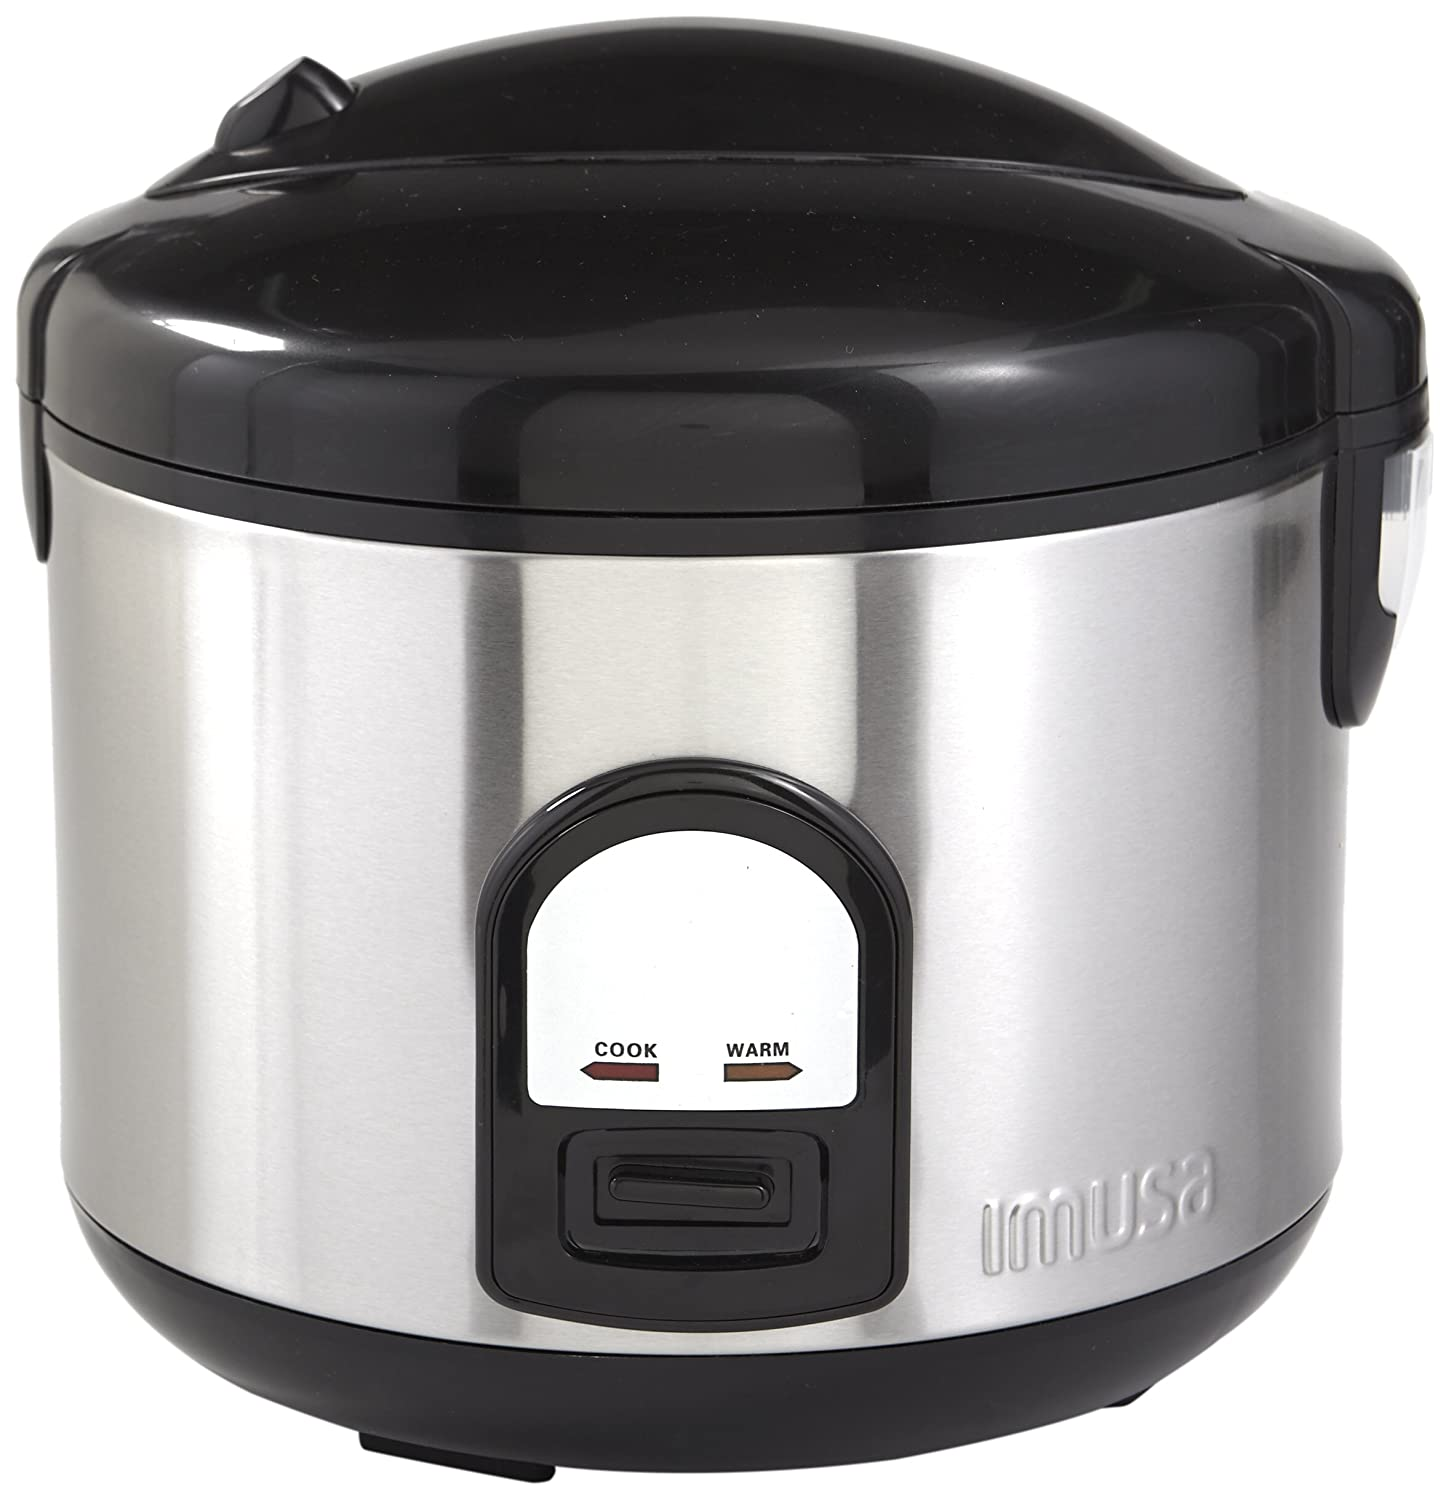 IMUSA USA GAU-00025 10 Cup Deluxe Rice Cooker with Steam Tray, Stainless Steel